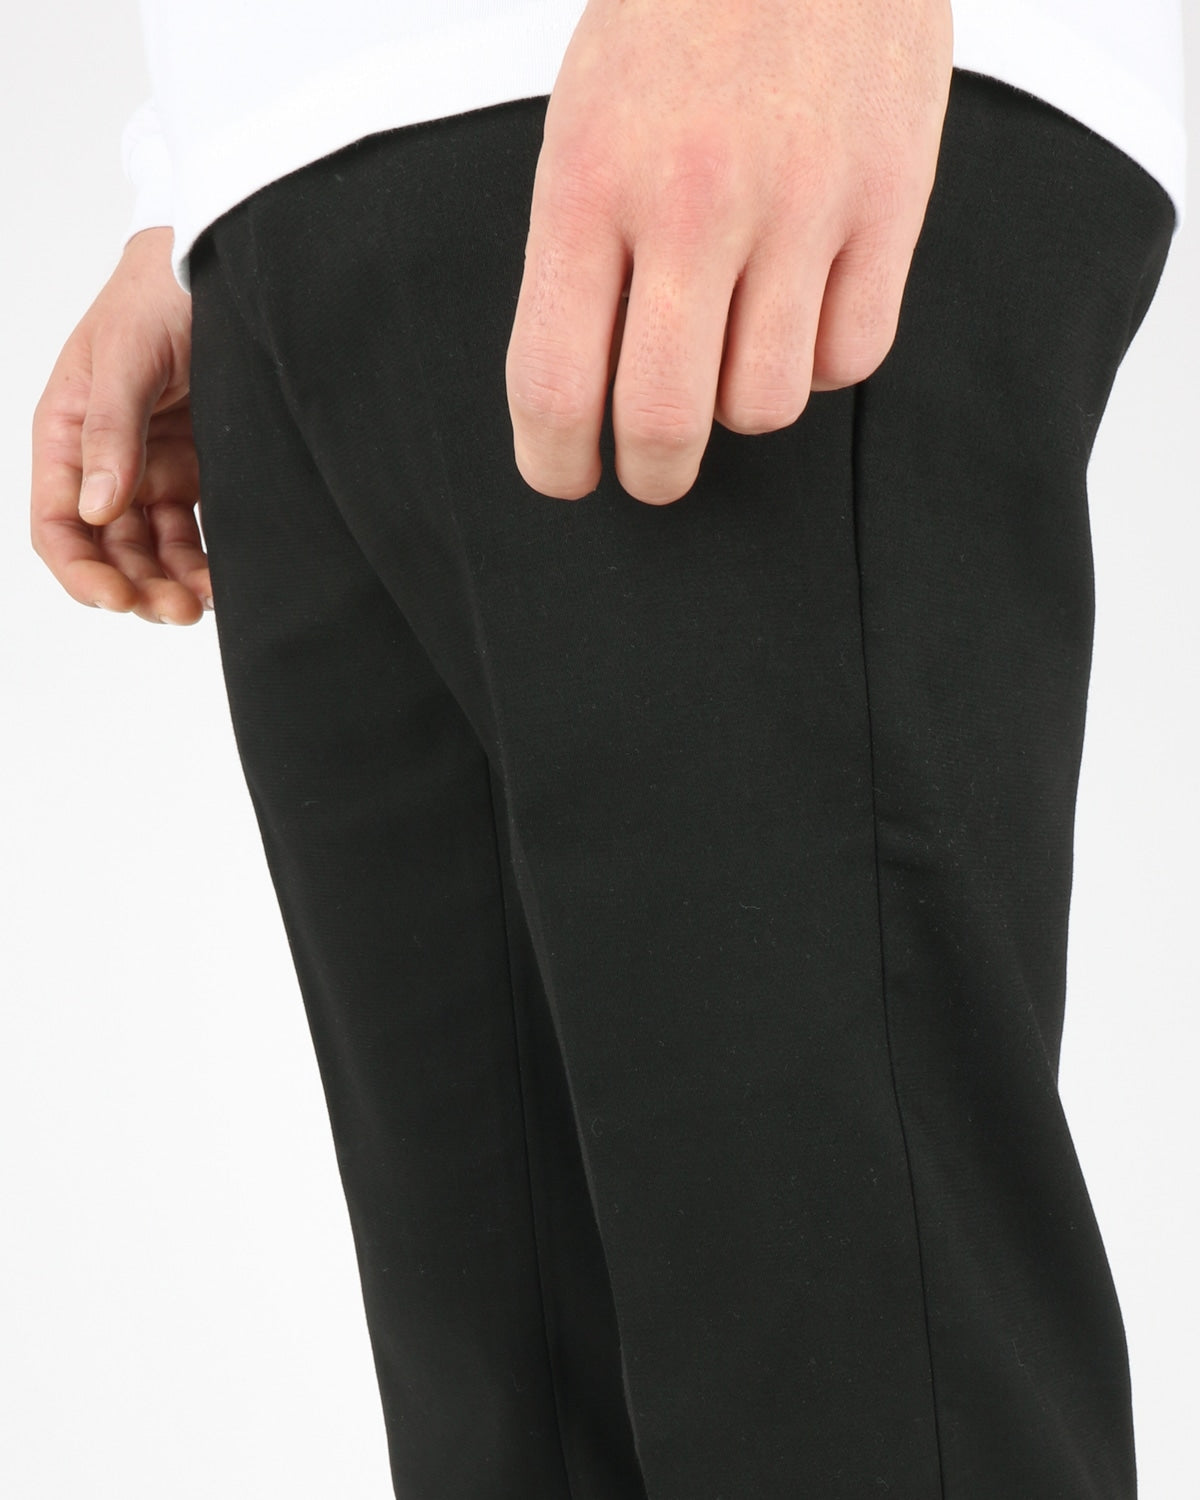 libertine libertine_transworld pants_black_3_3